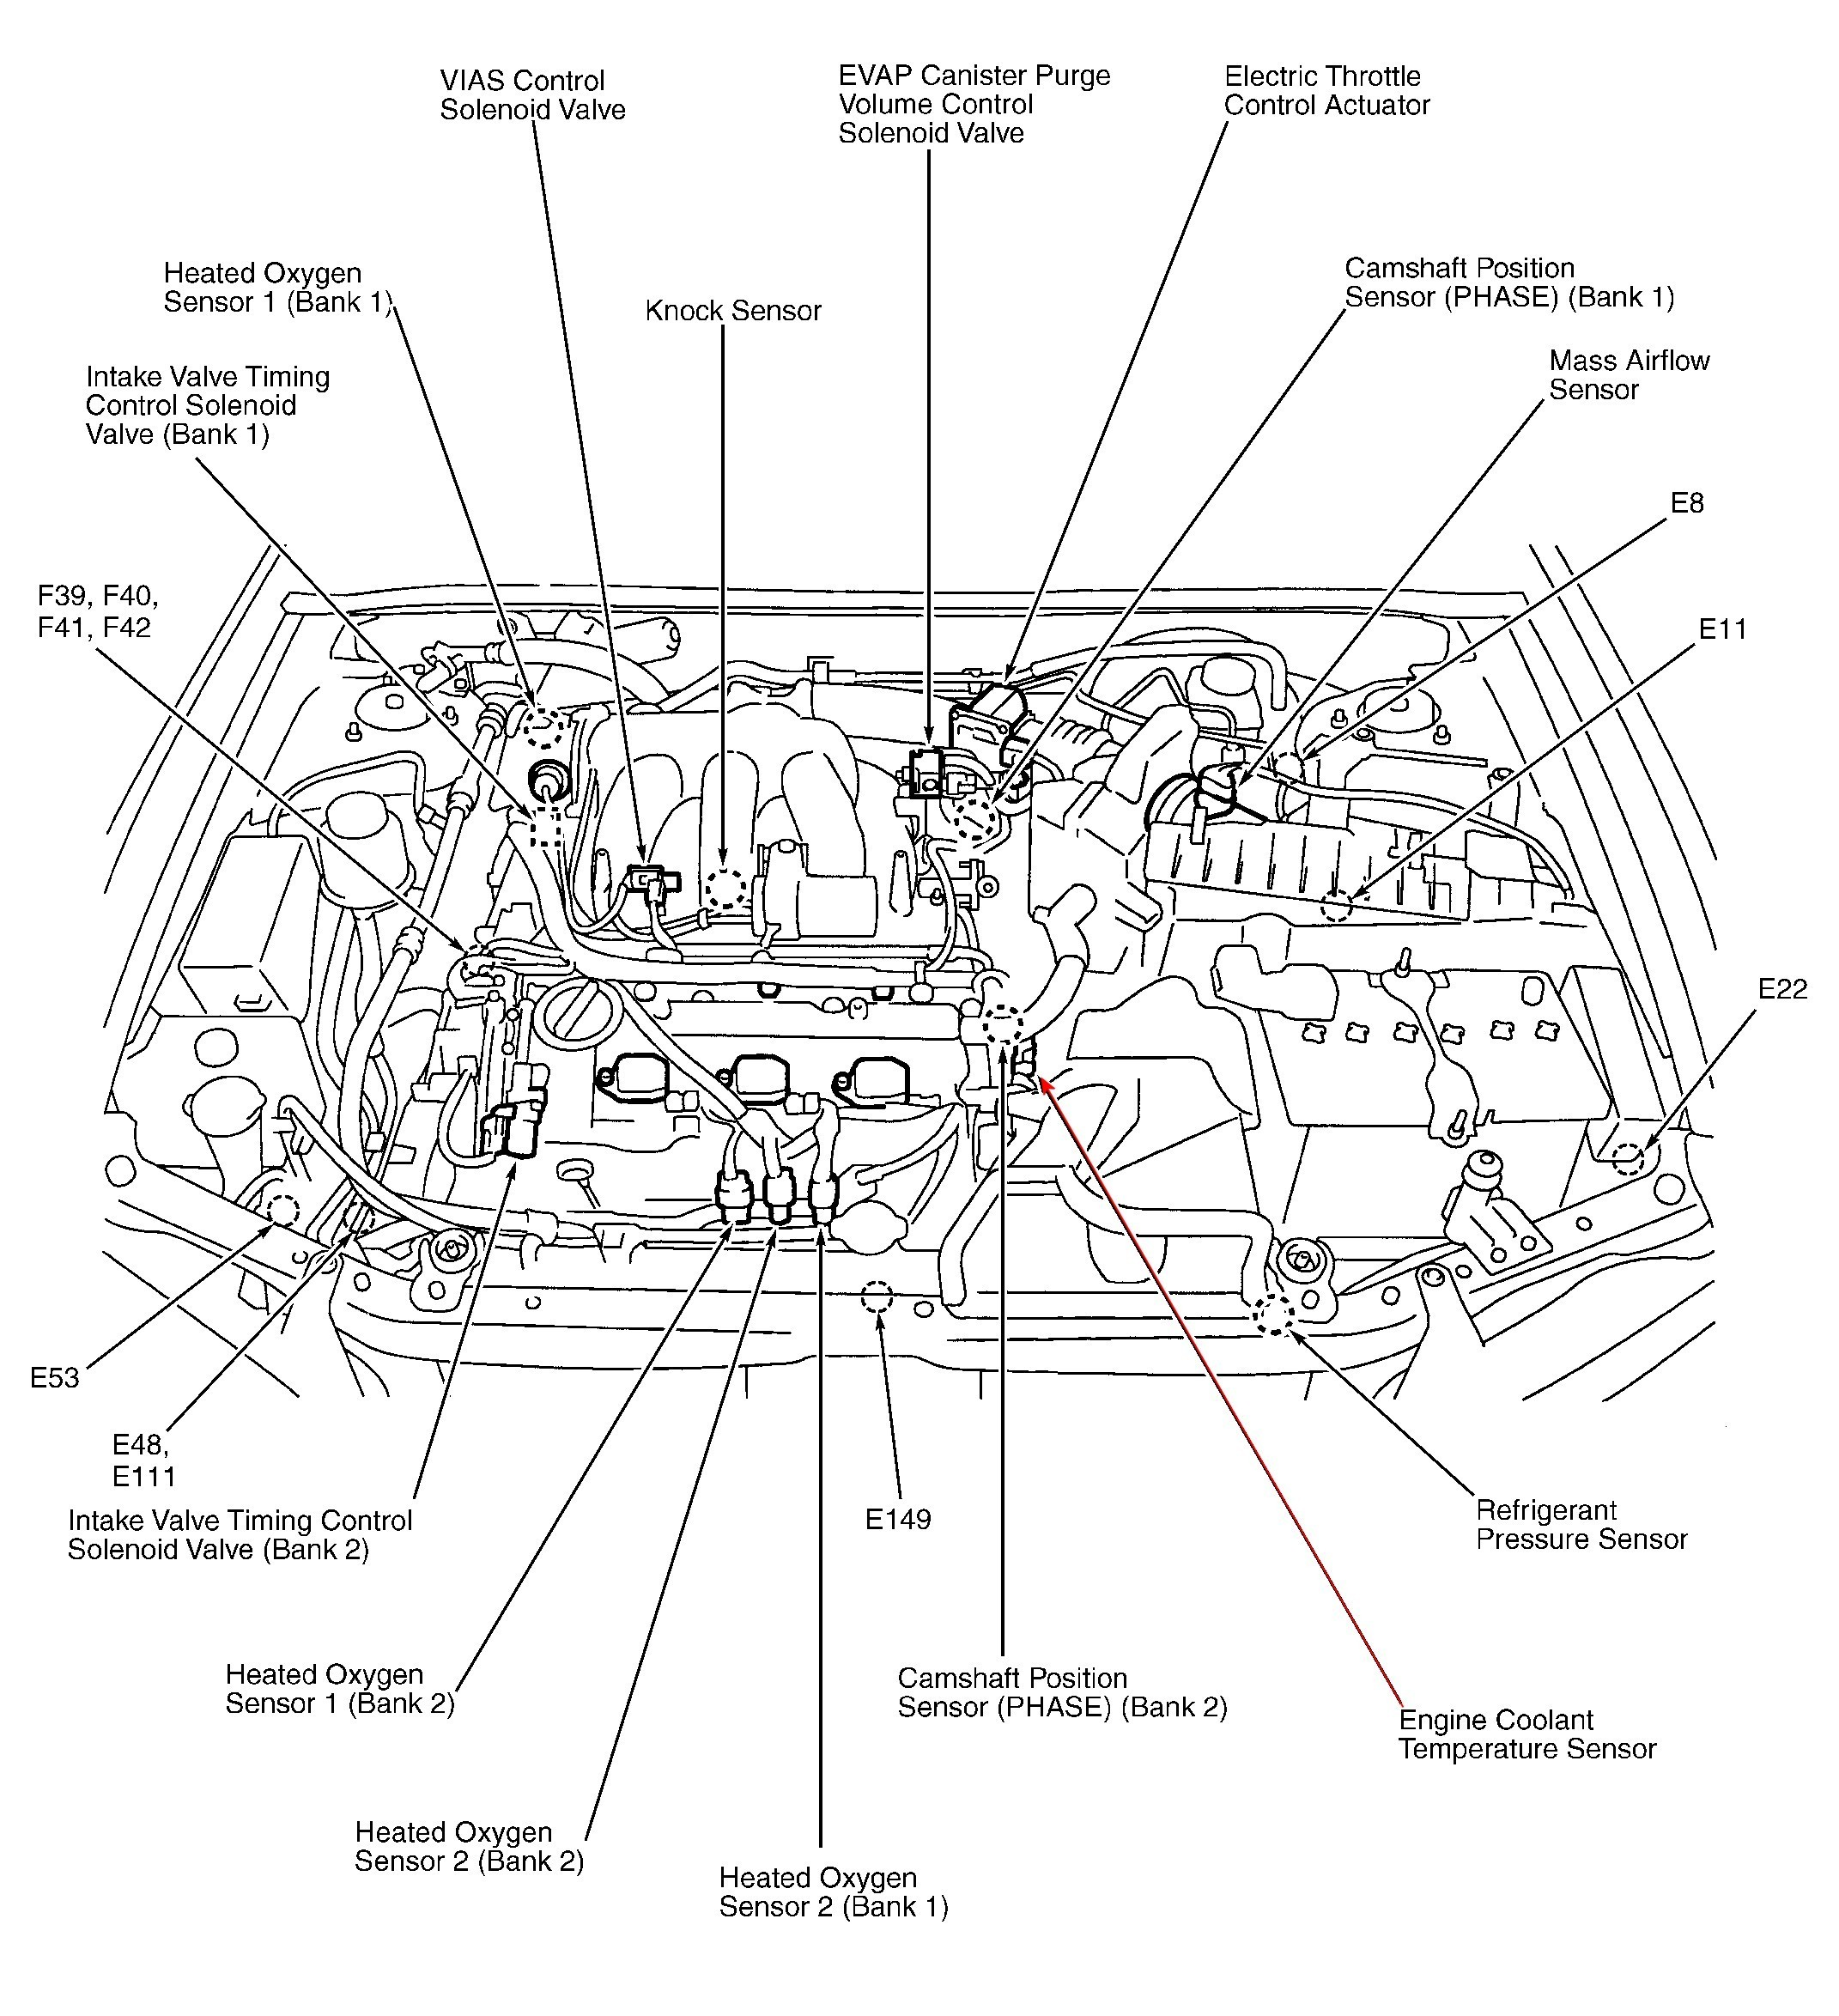 wiring diagram for 2008 dodge nitro switch diagram u2022 rh 140 82 24 126 [ 2142 x 2348 Pixel ]